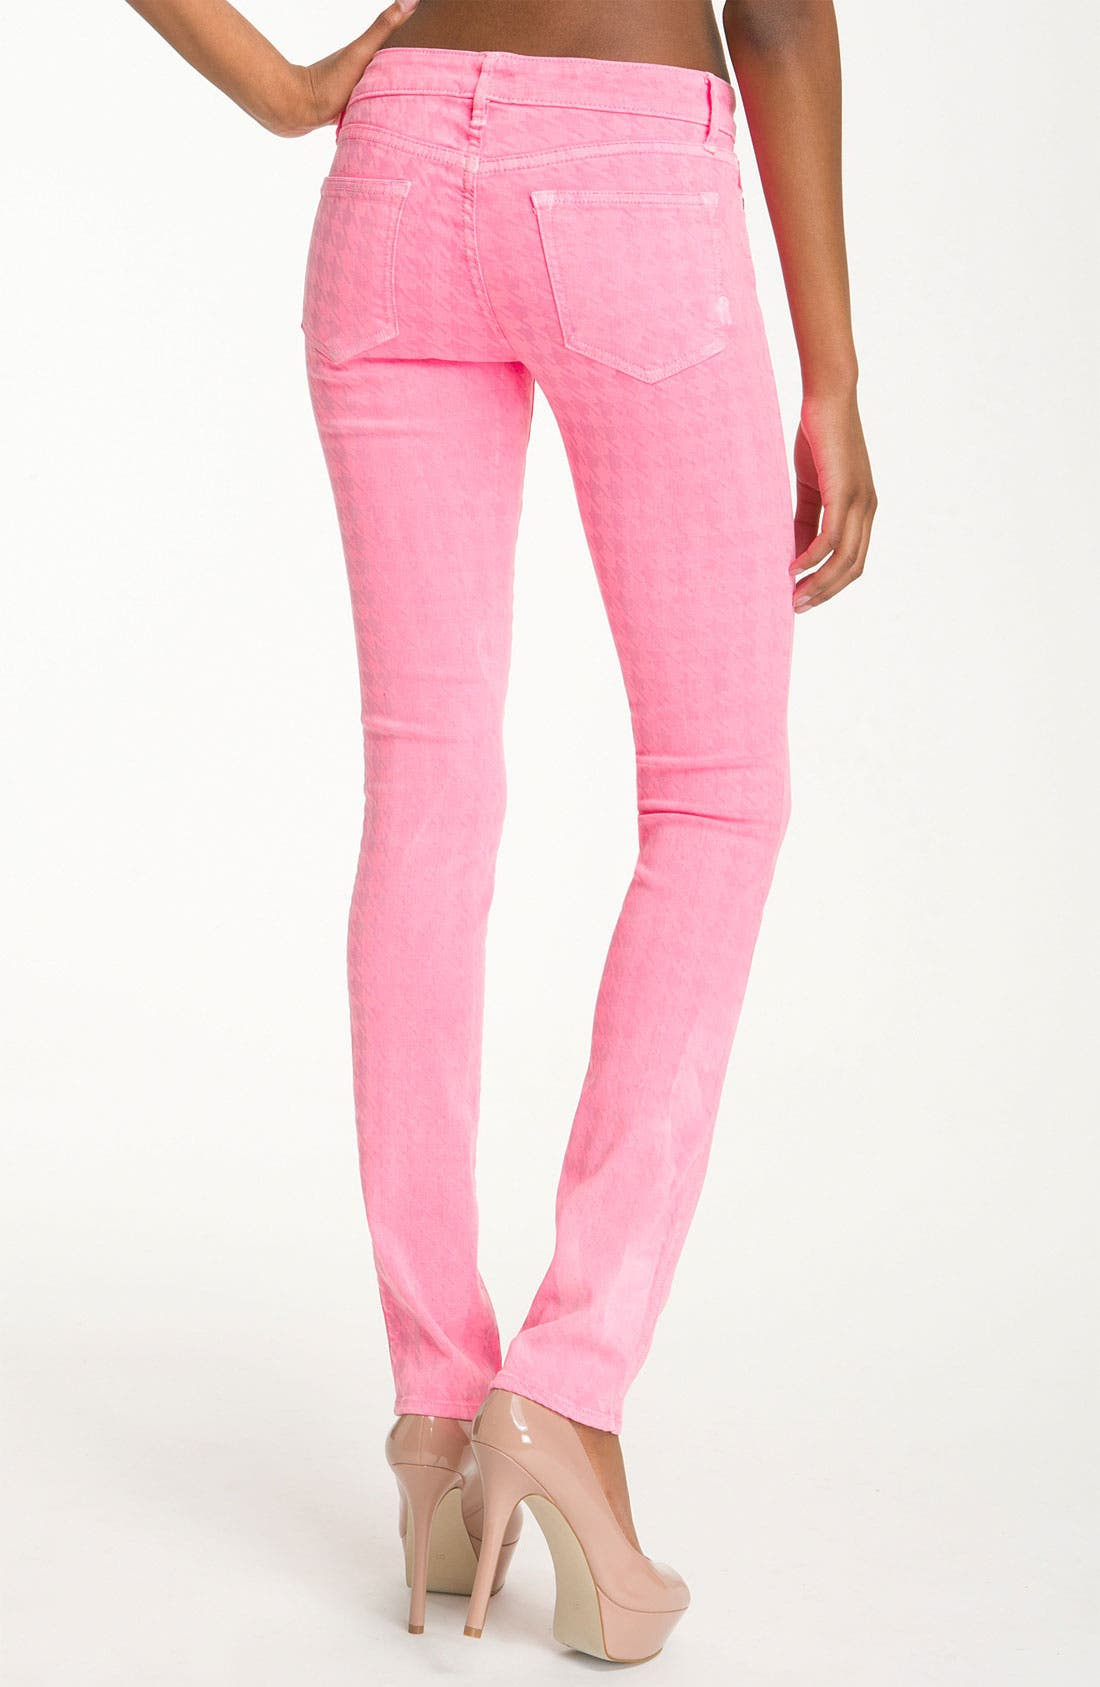 Alternate Image 2  - Rich & Skinny 'Legacy' Houndstooth Print Skinny Jeans (Neon Pink)